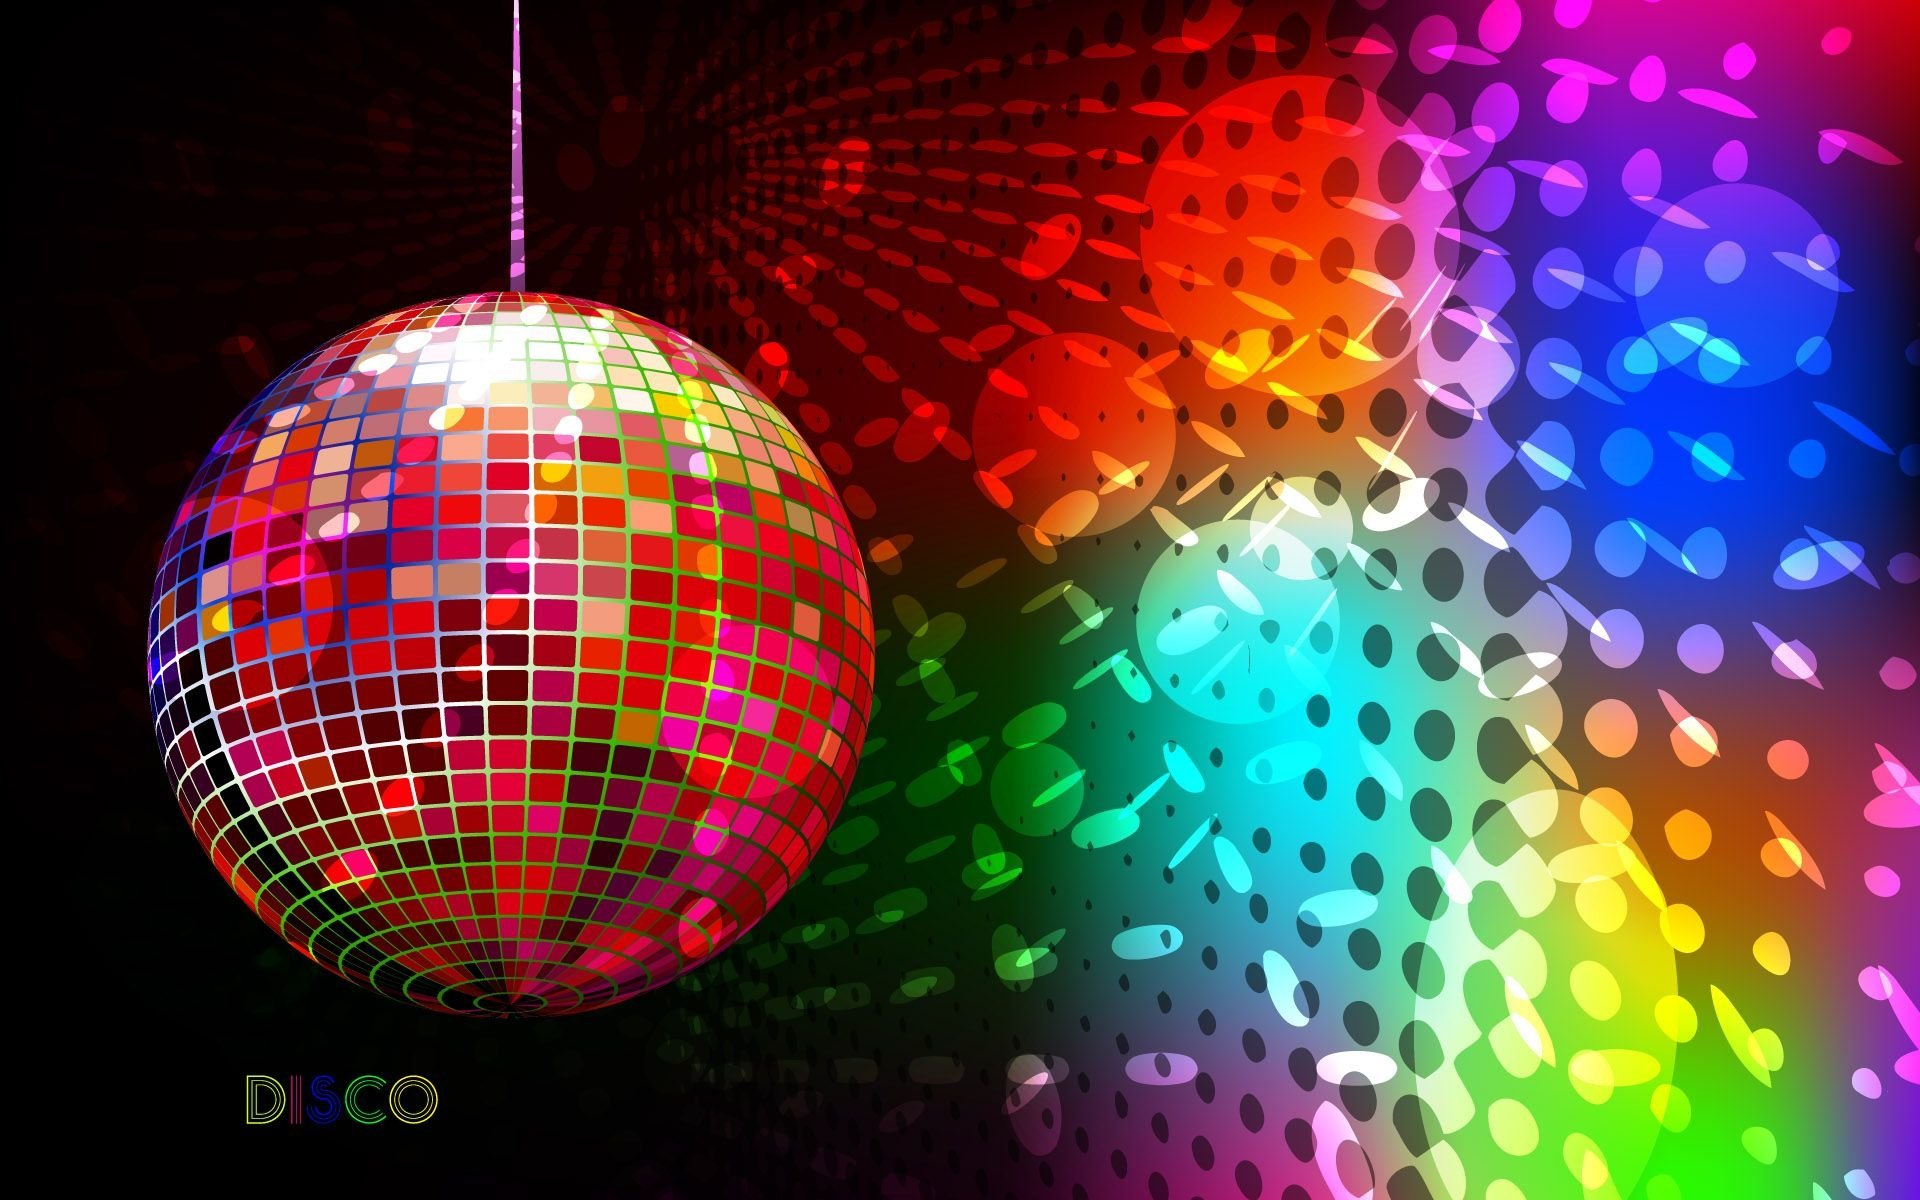 Disco Wallpaper